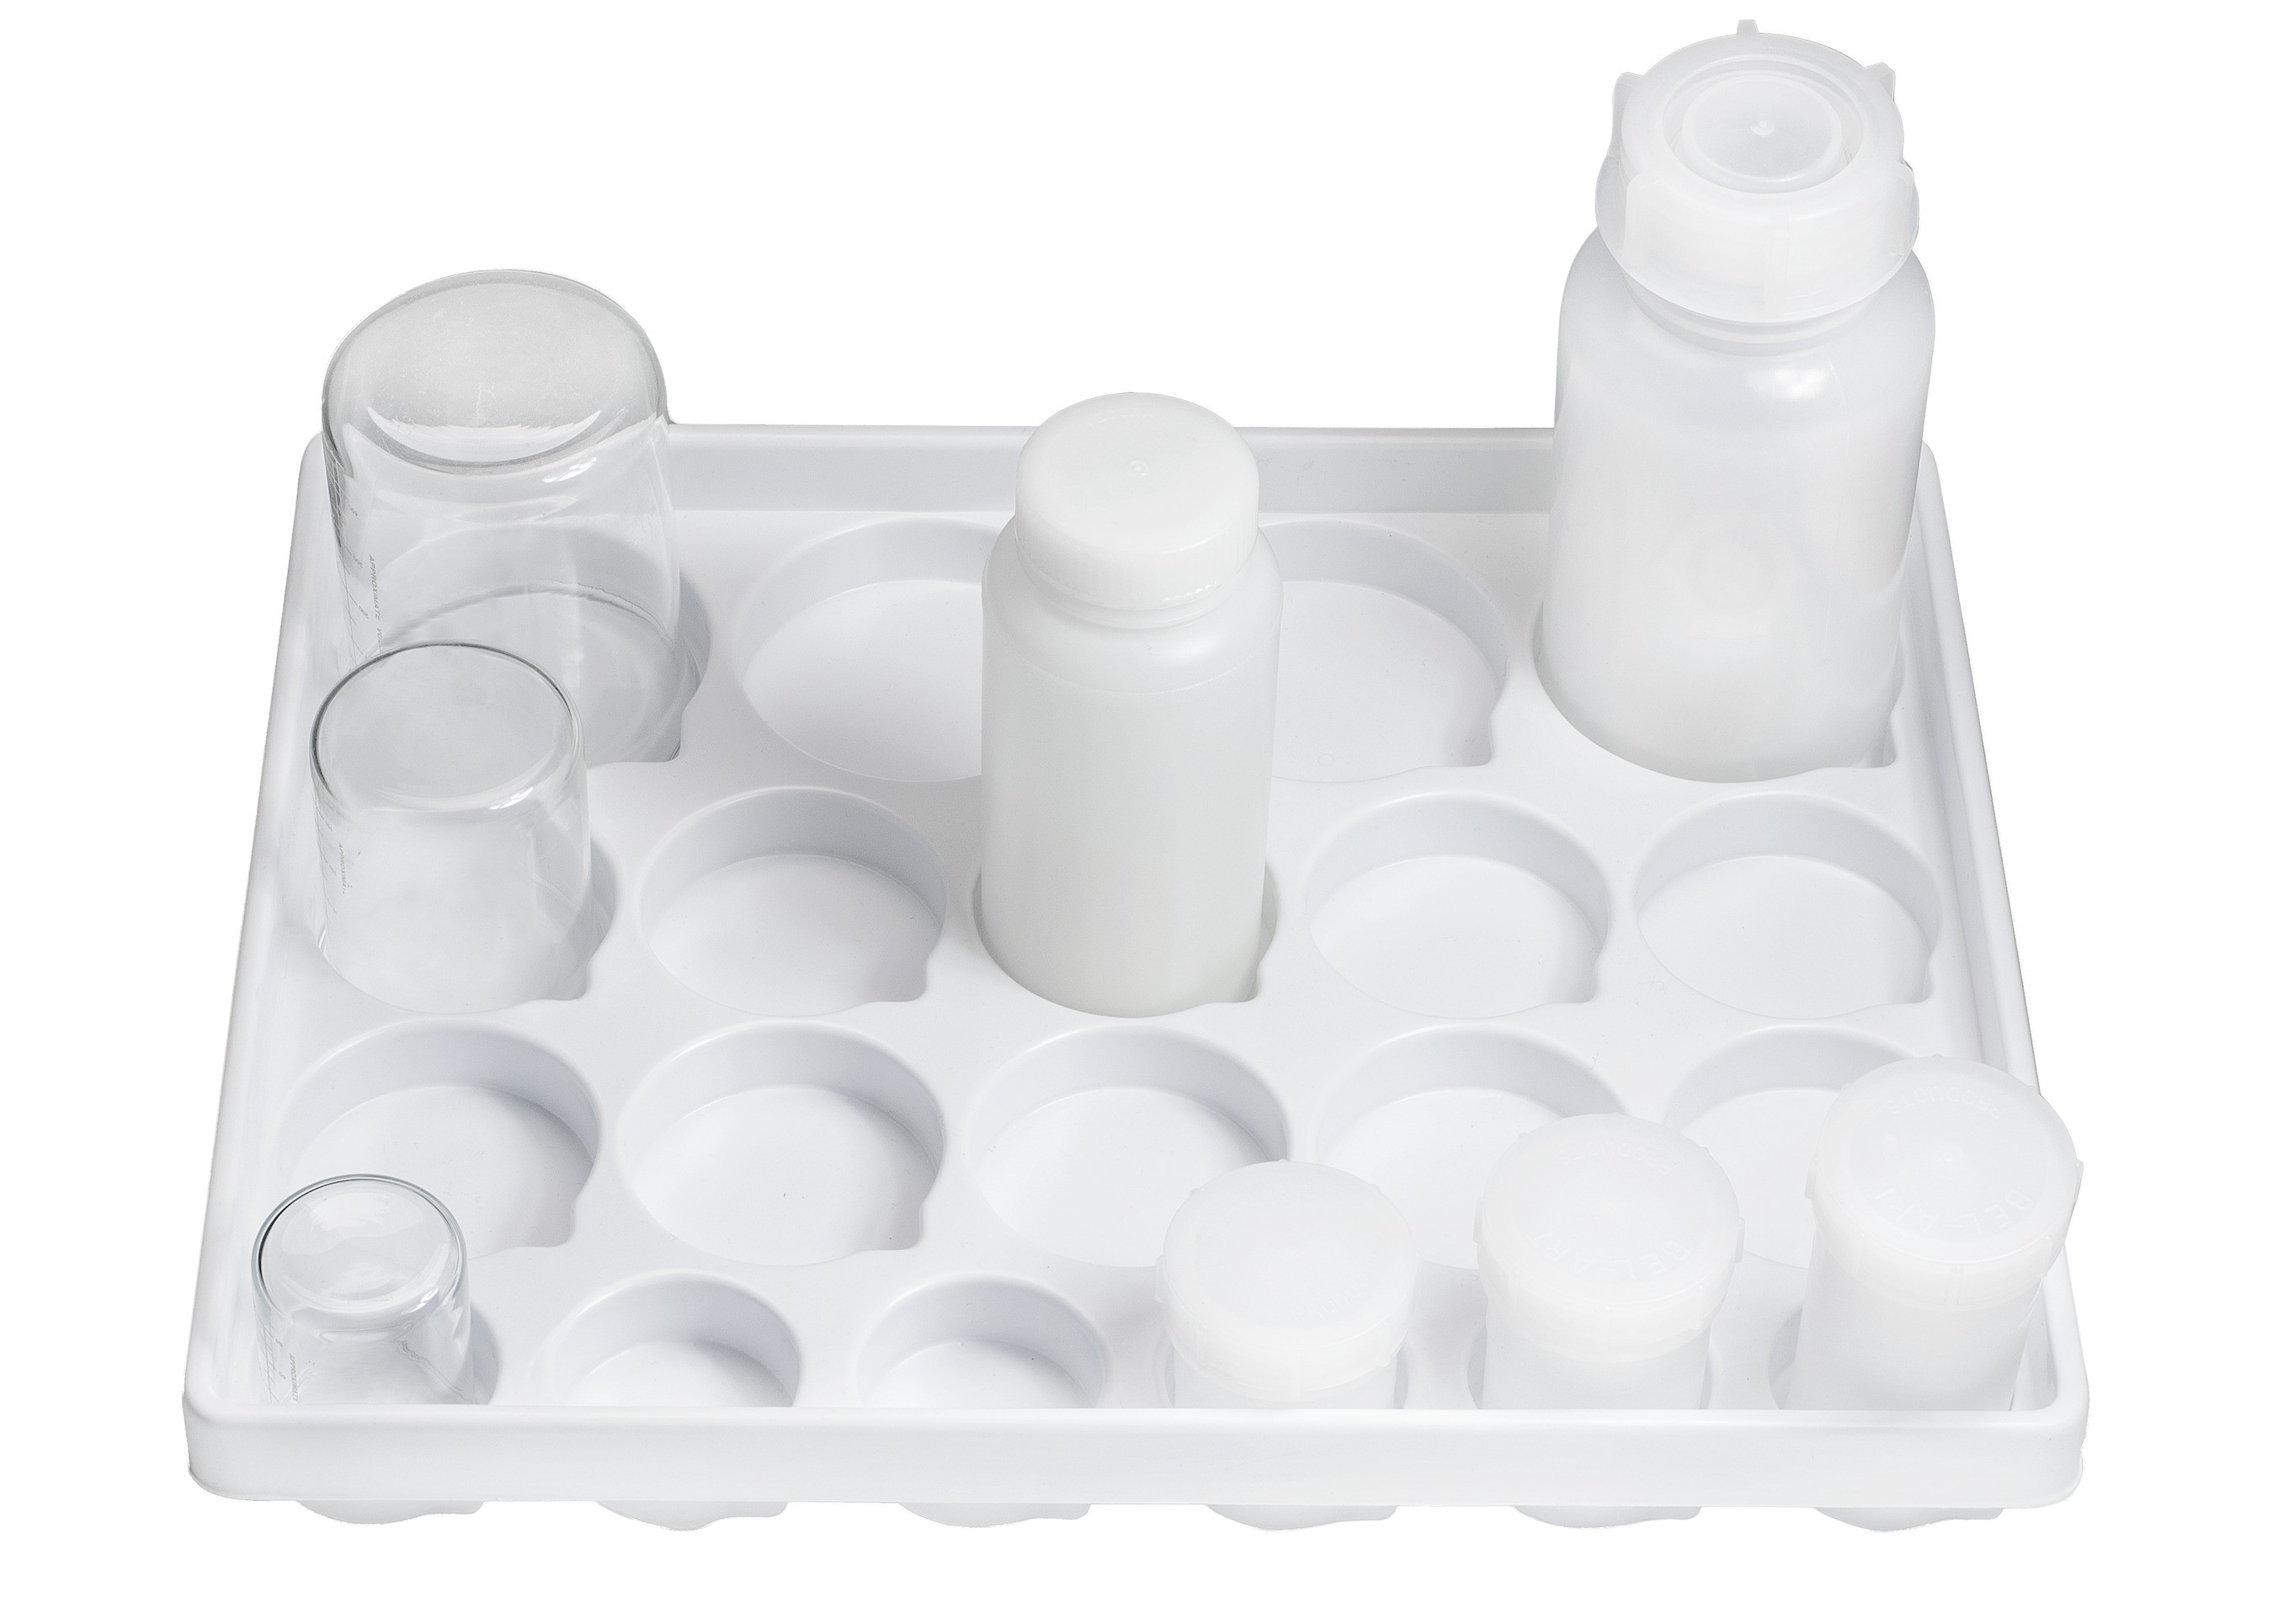 SP Bel-Art Lab Drawer Compartment Tray for Beakers, Flasks, Jars; 20 Wells, 14 x 17½ x 2¼ in.